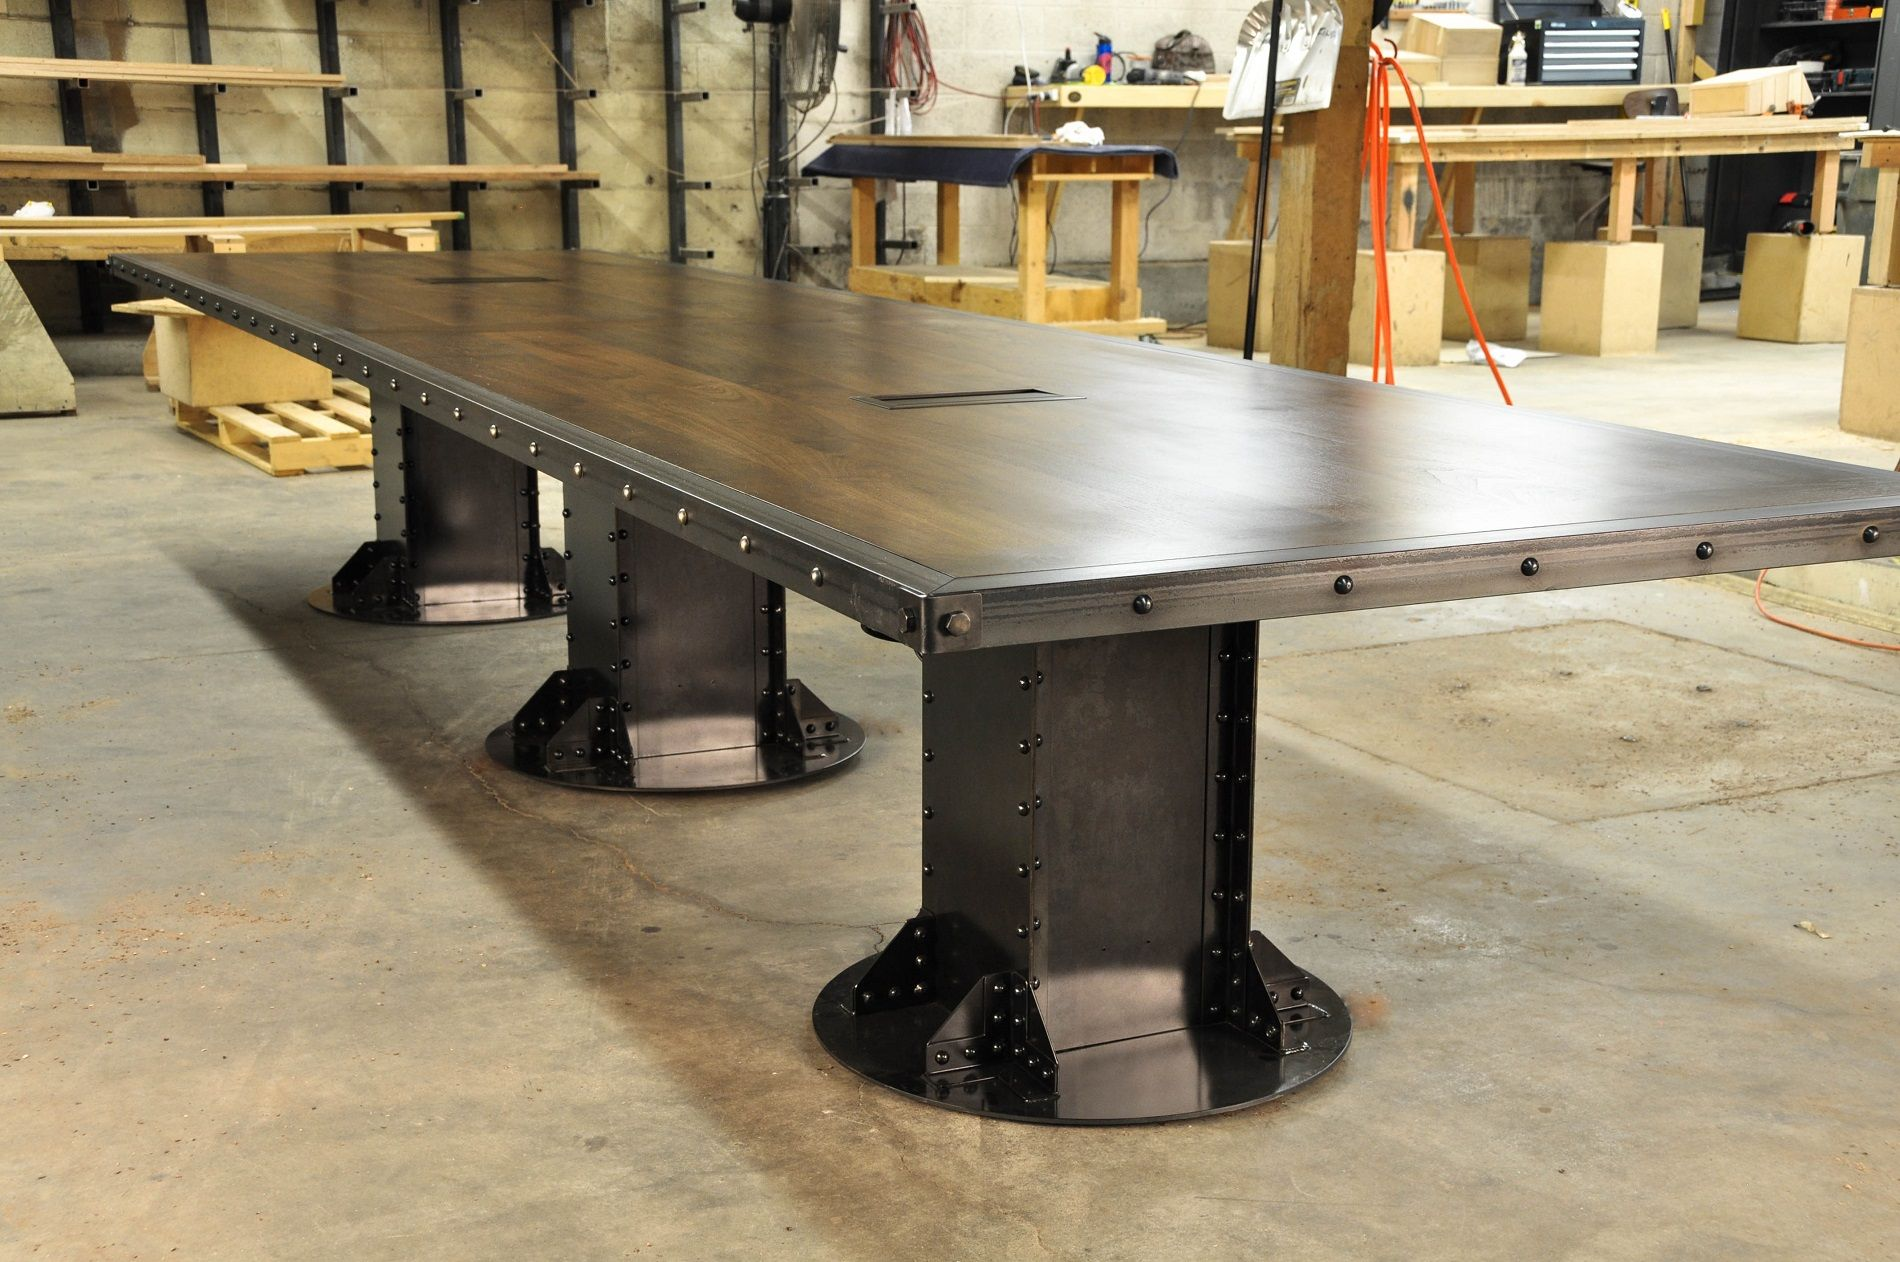 I Beam Conference Table In Walnut With Data Ports Built By Vintage Industrial In Phoenix Industrial Conference Table Conference Table Dining Table